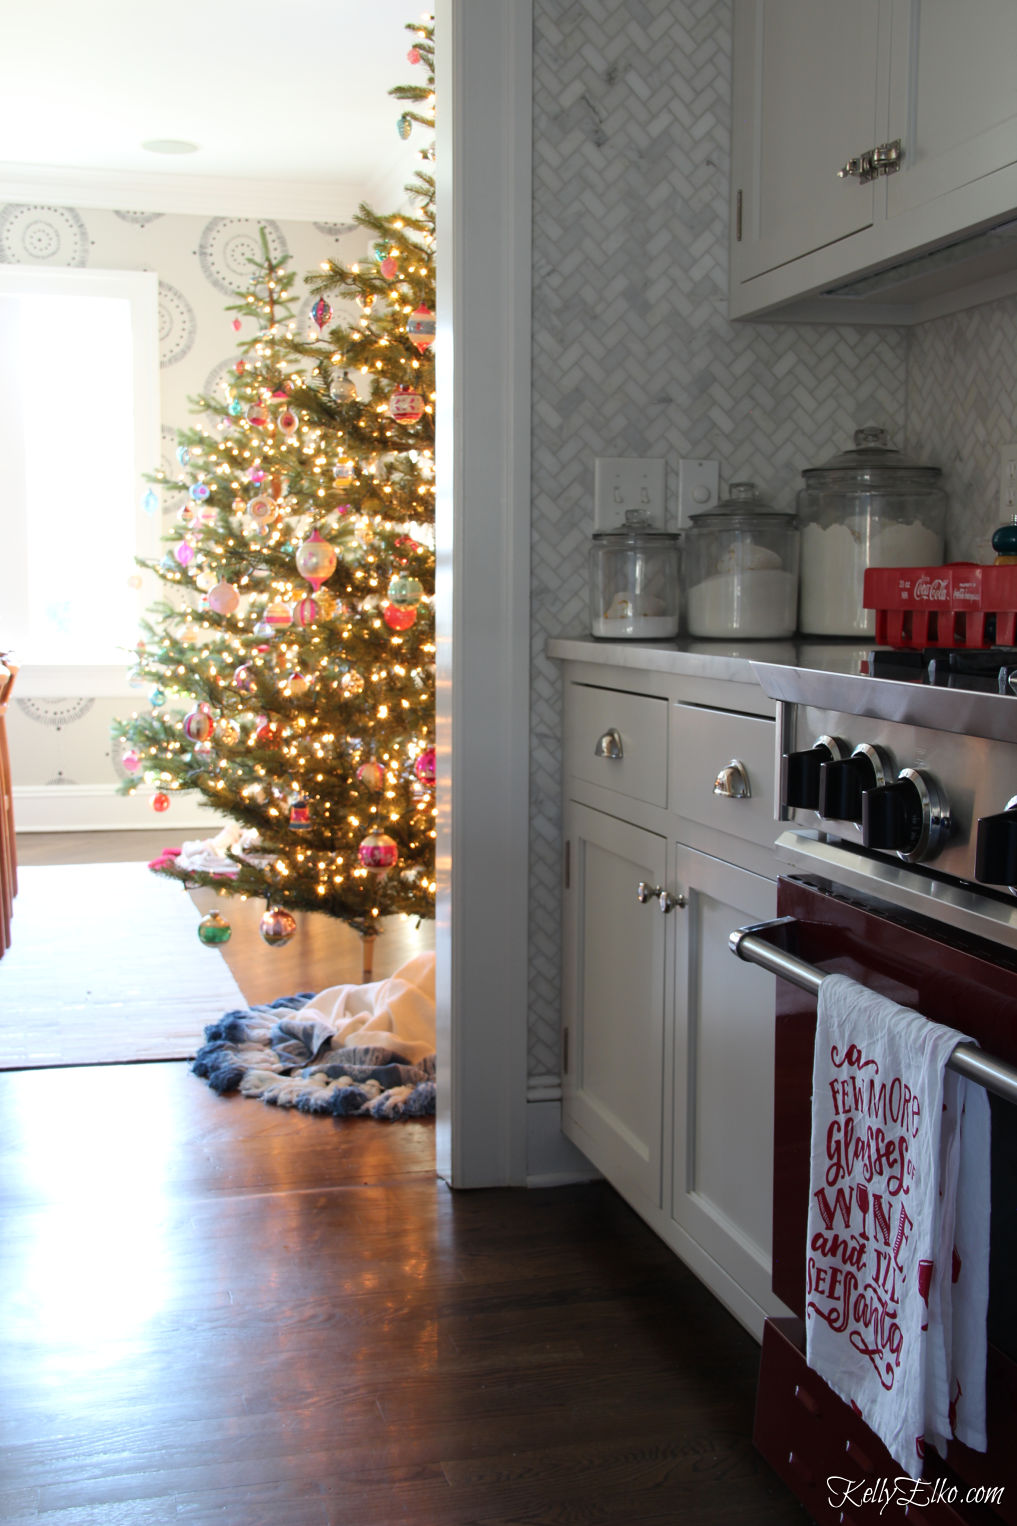 Love the pair of Christmas trees in the dining room attached to this kitchen kellyelko.com #christmastrees #christmaskitchen #farmhousechristmas #christmasdecor #christmasdecorations